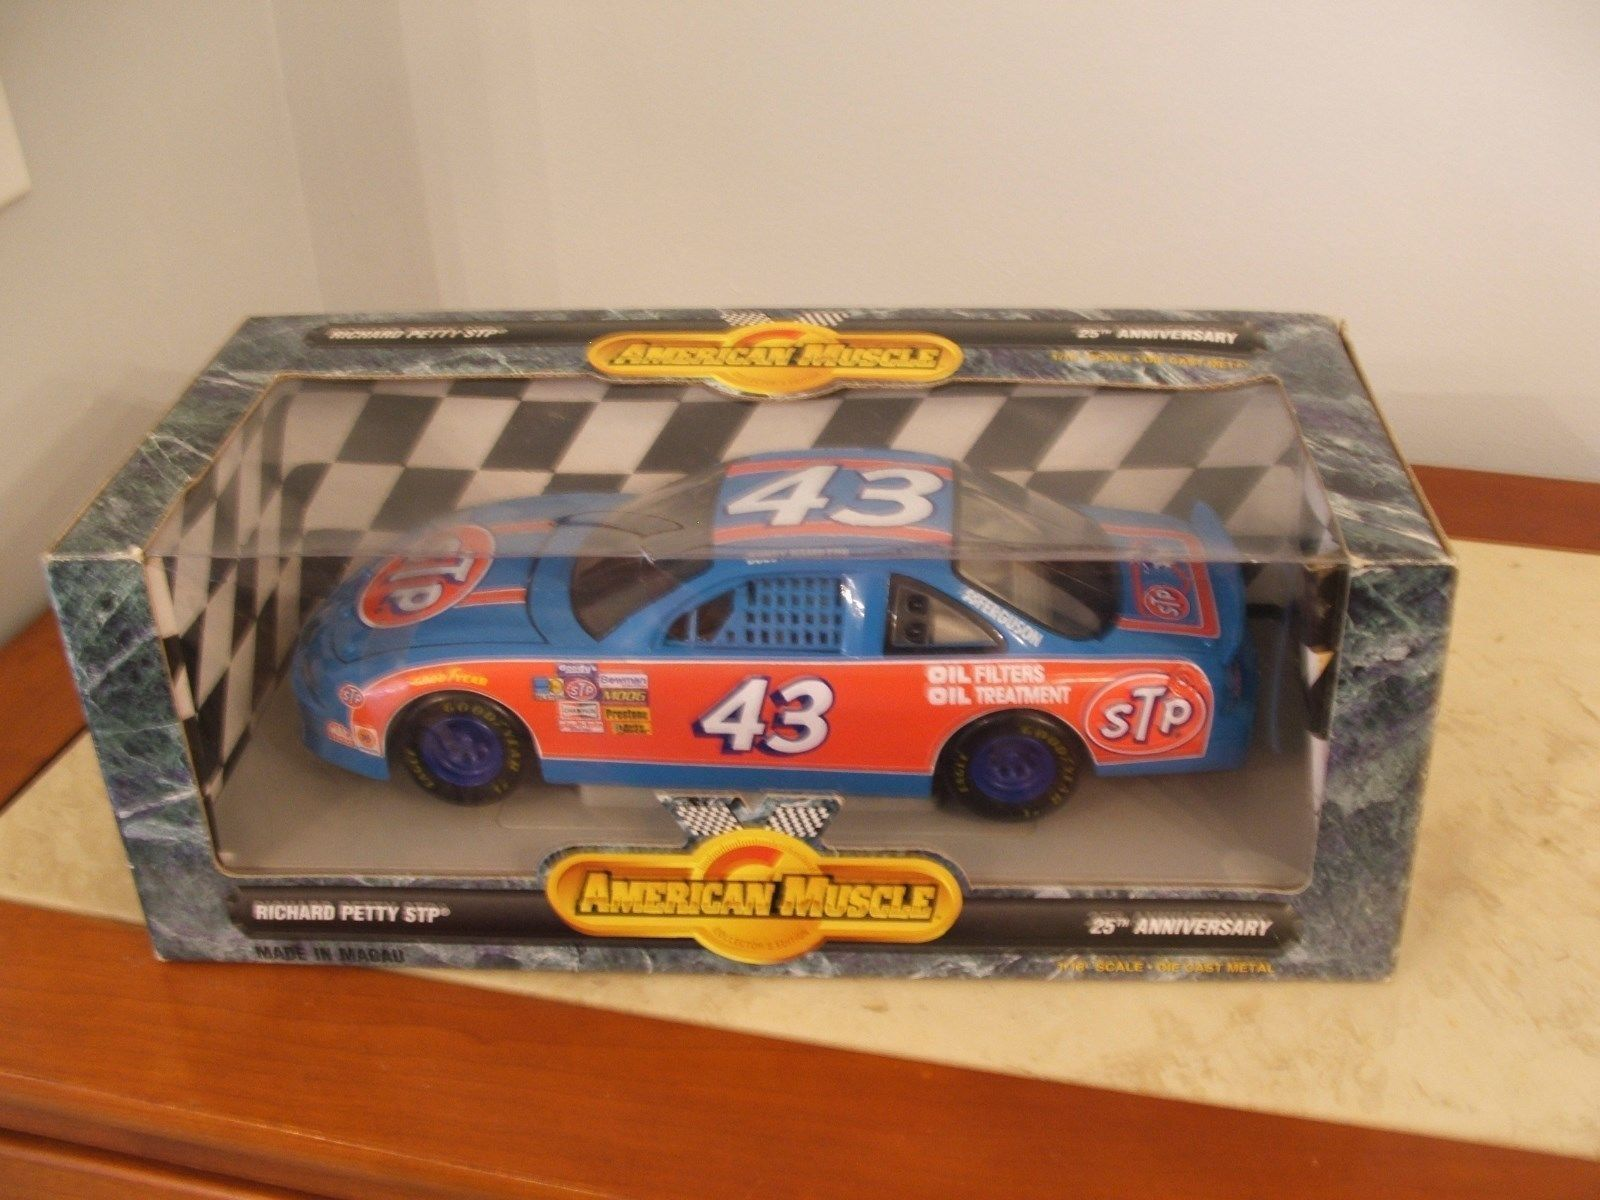 NEW  ERTL  Bobby Hamilton #43 Richard Petty 25th Anv. American Muscle 1/18 scale